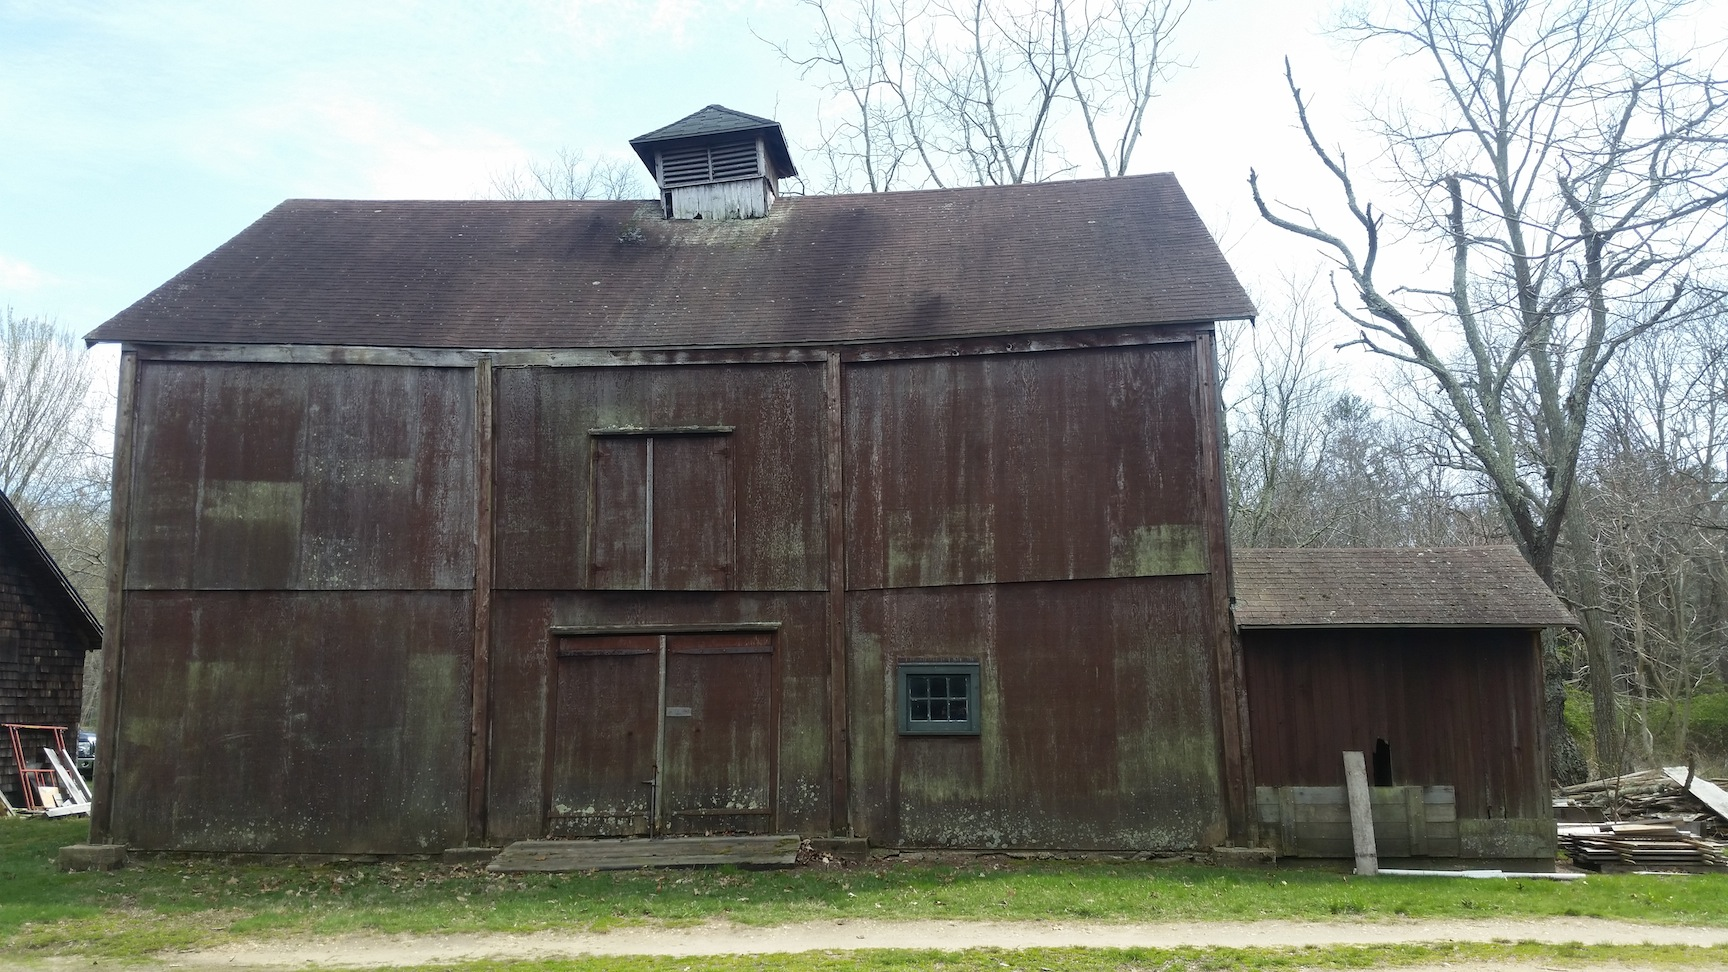 Sylvester Manor Educational Farm, Shelter Island, received $9,000 in Preserve NY funding in 2016 to support the cost of building condition reports for each of the farm outbuildings.